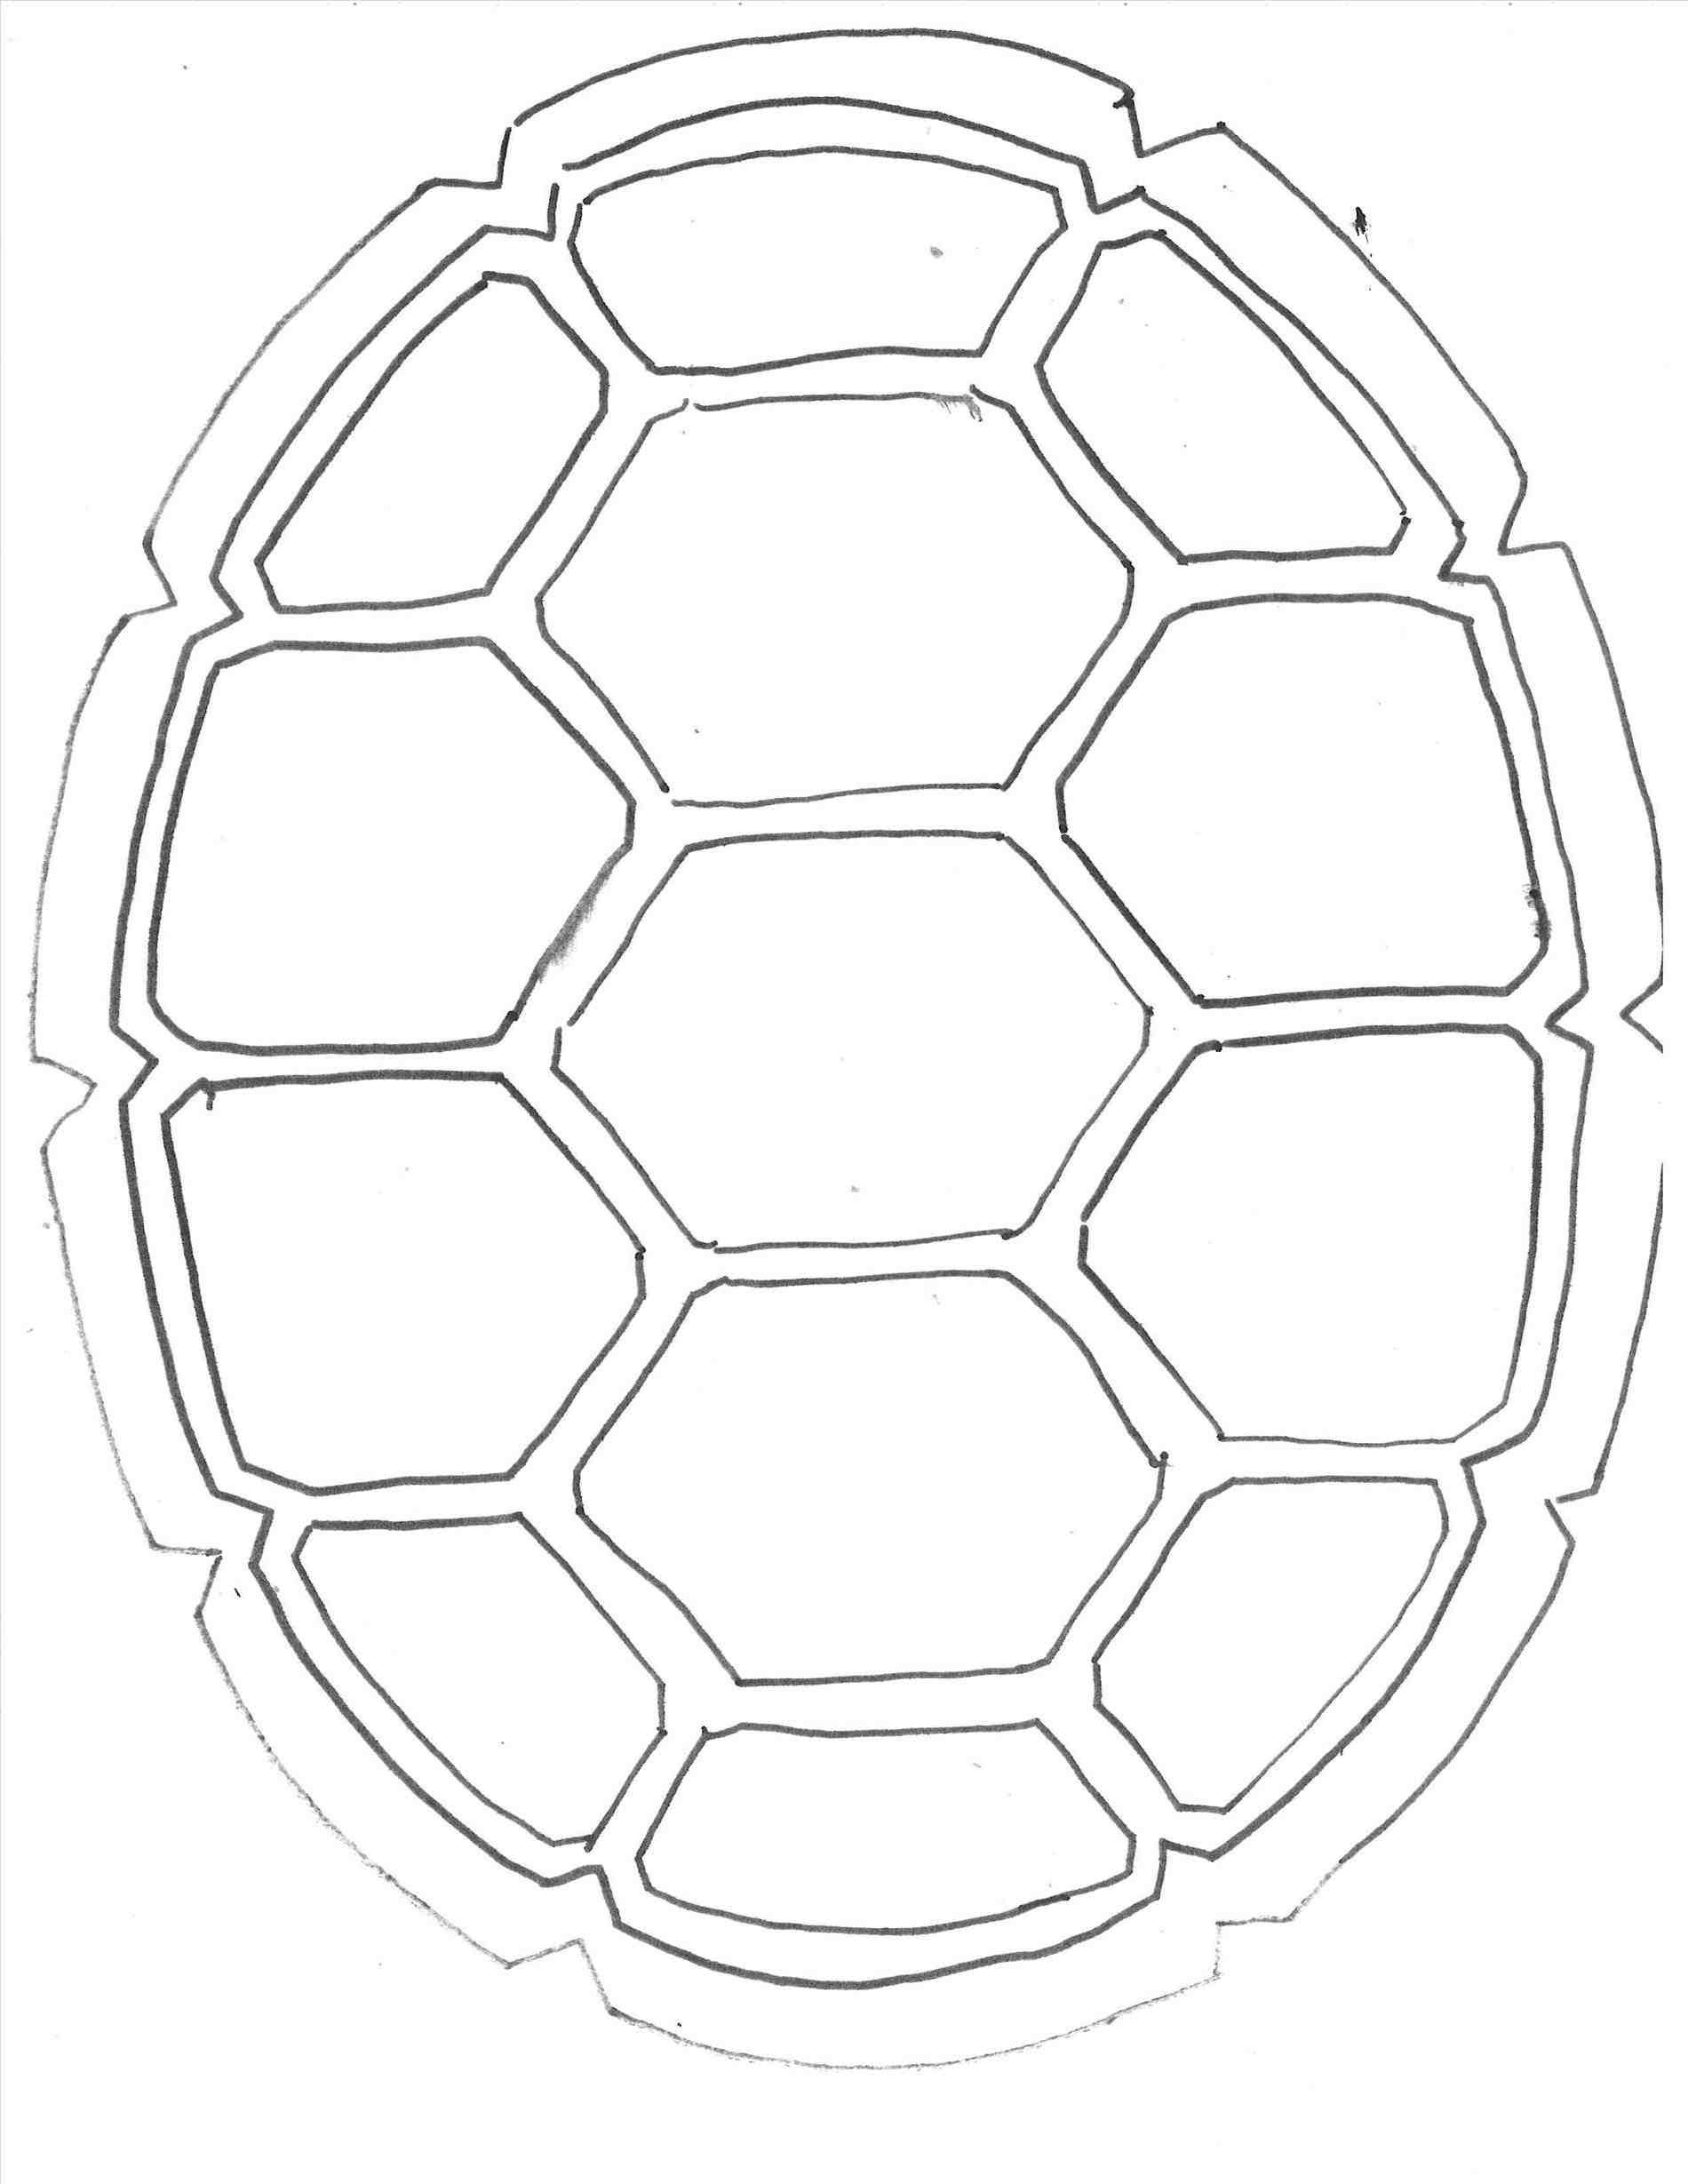 Cute How To Draw A Turtle Shell Step By Step Cron From Letter P Shpes Esy Ninj Crons Ninj How To Draw Note9 Info Turtle Drawing Turtle Shell Turtle Art